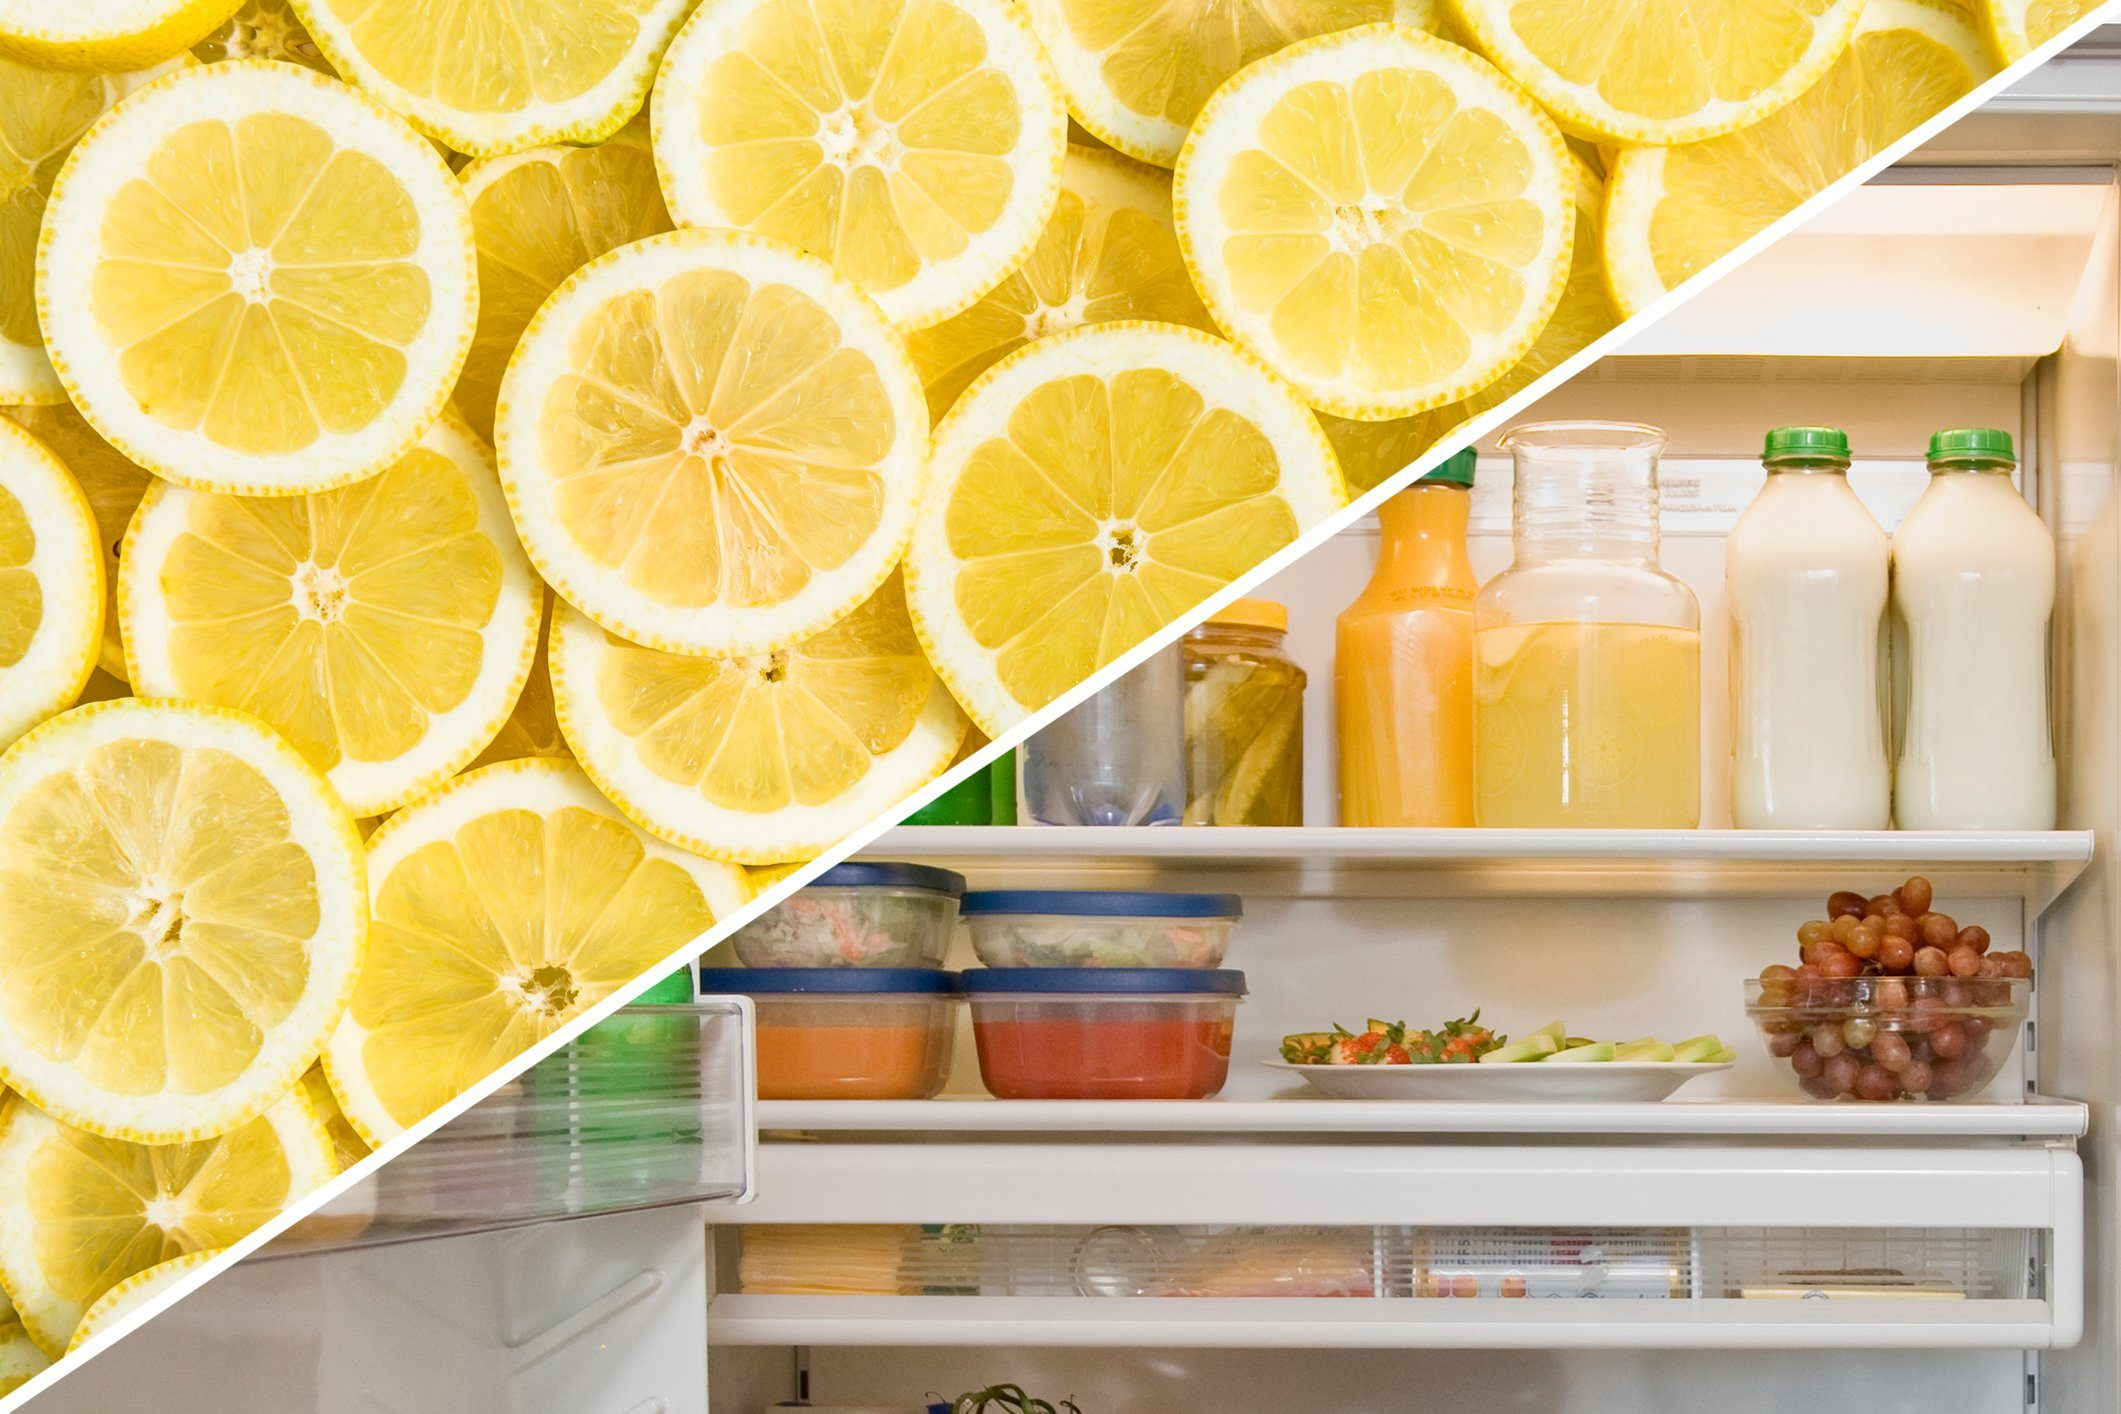 refrigerator clean lemon